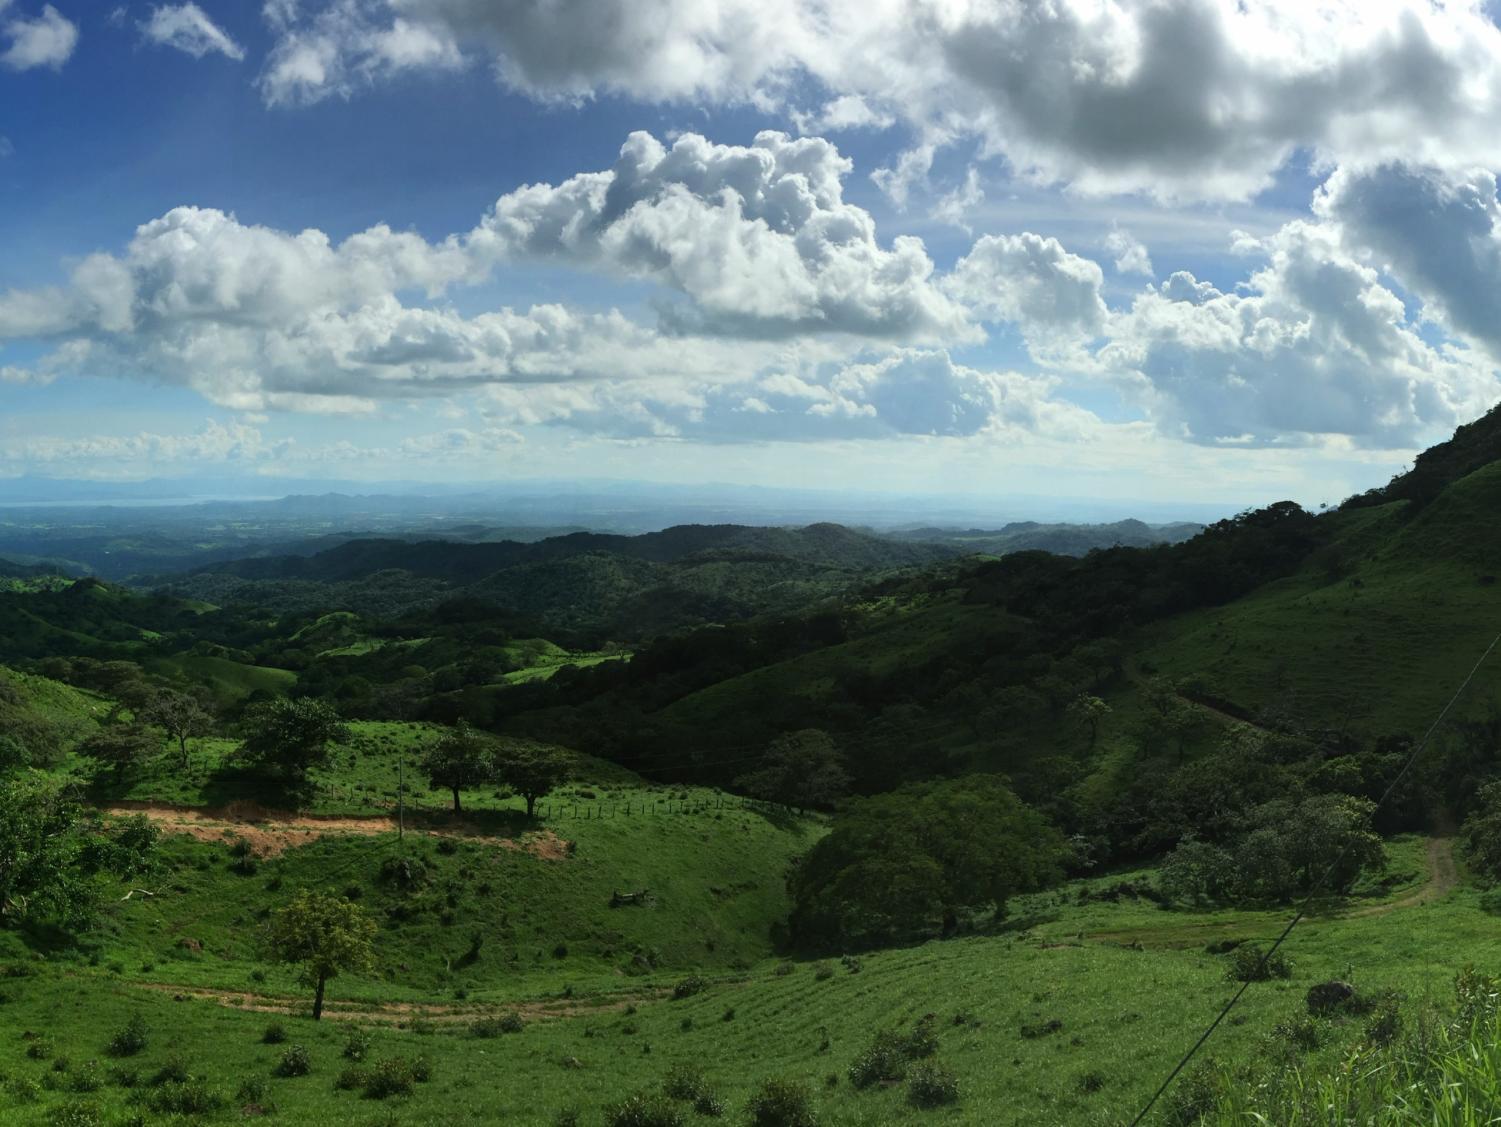 A roadside stop in Costa Rica overlooks an expanse of lush greenery.